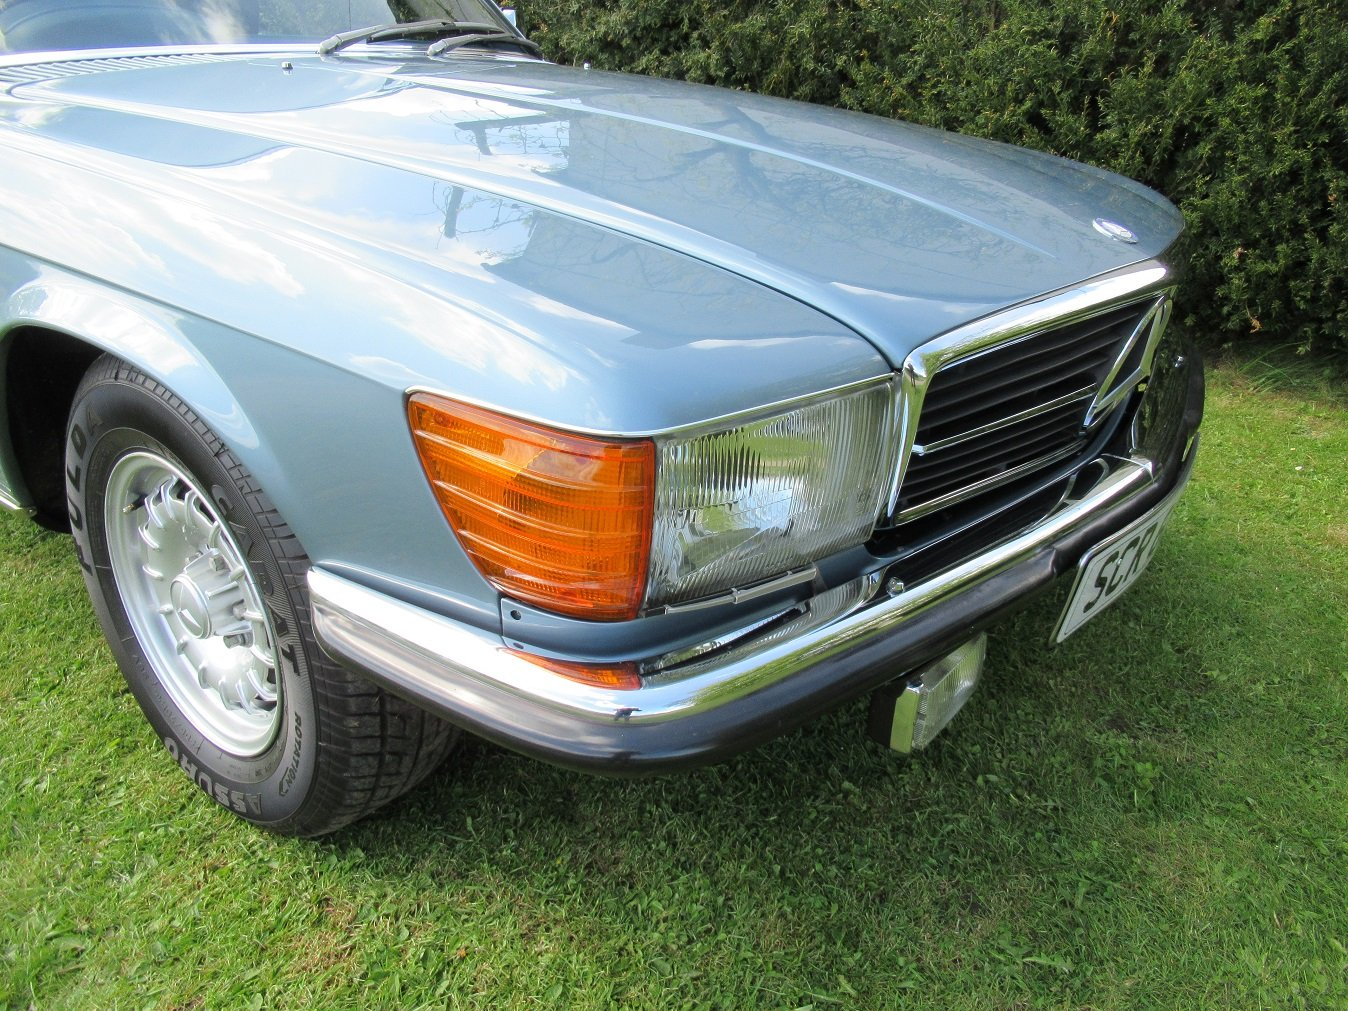 1977 MERCEDES 450 SLC  C107 50,000 Miles only. For Sale (picture 2 of 6)